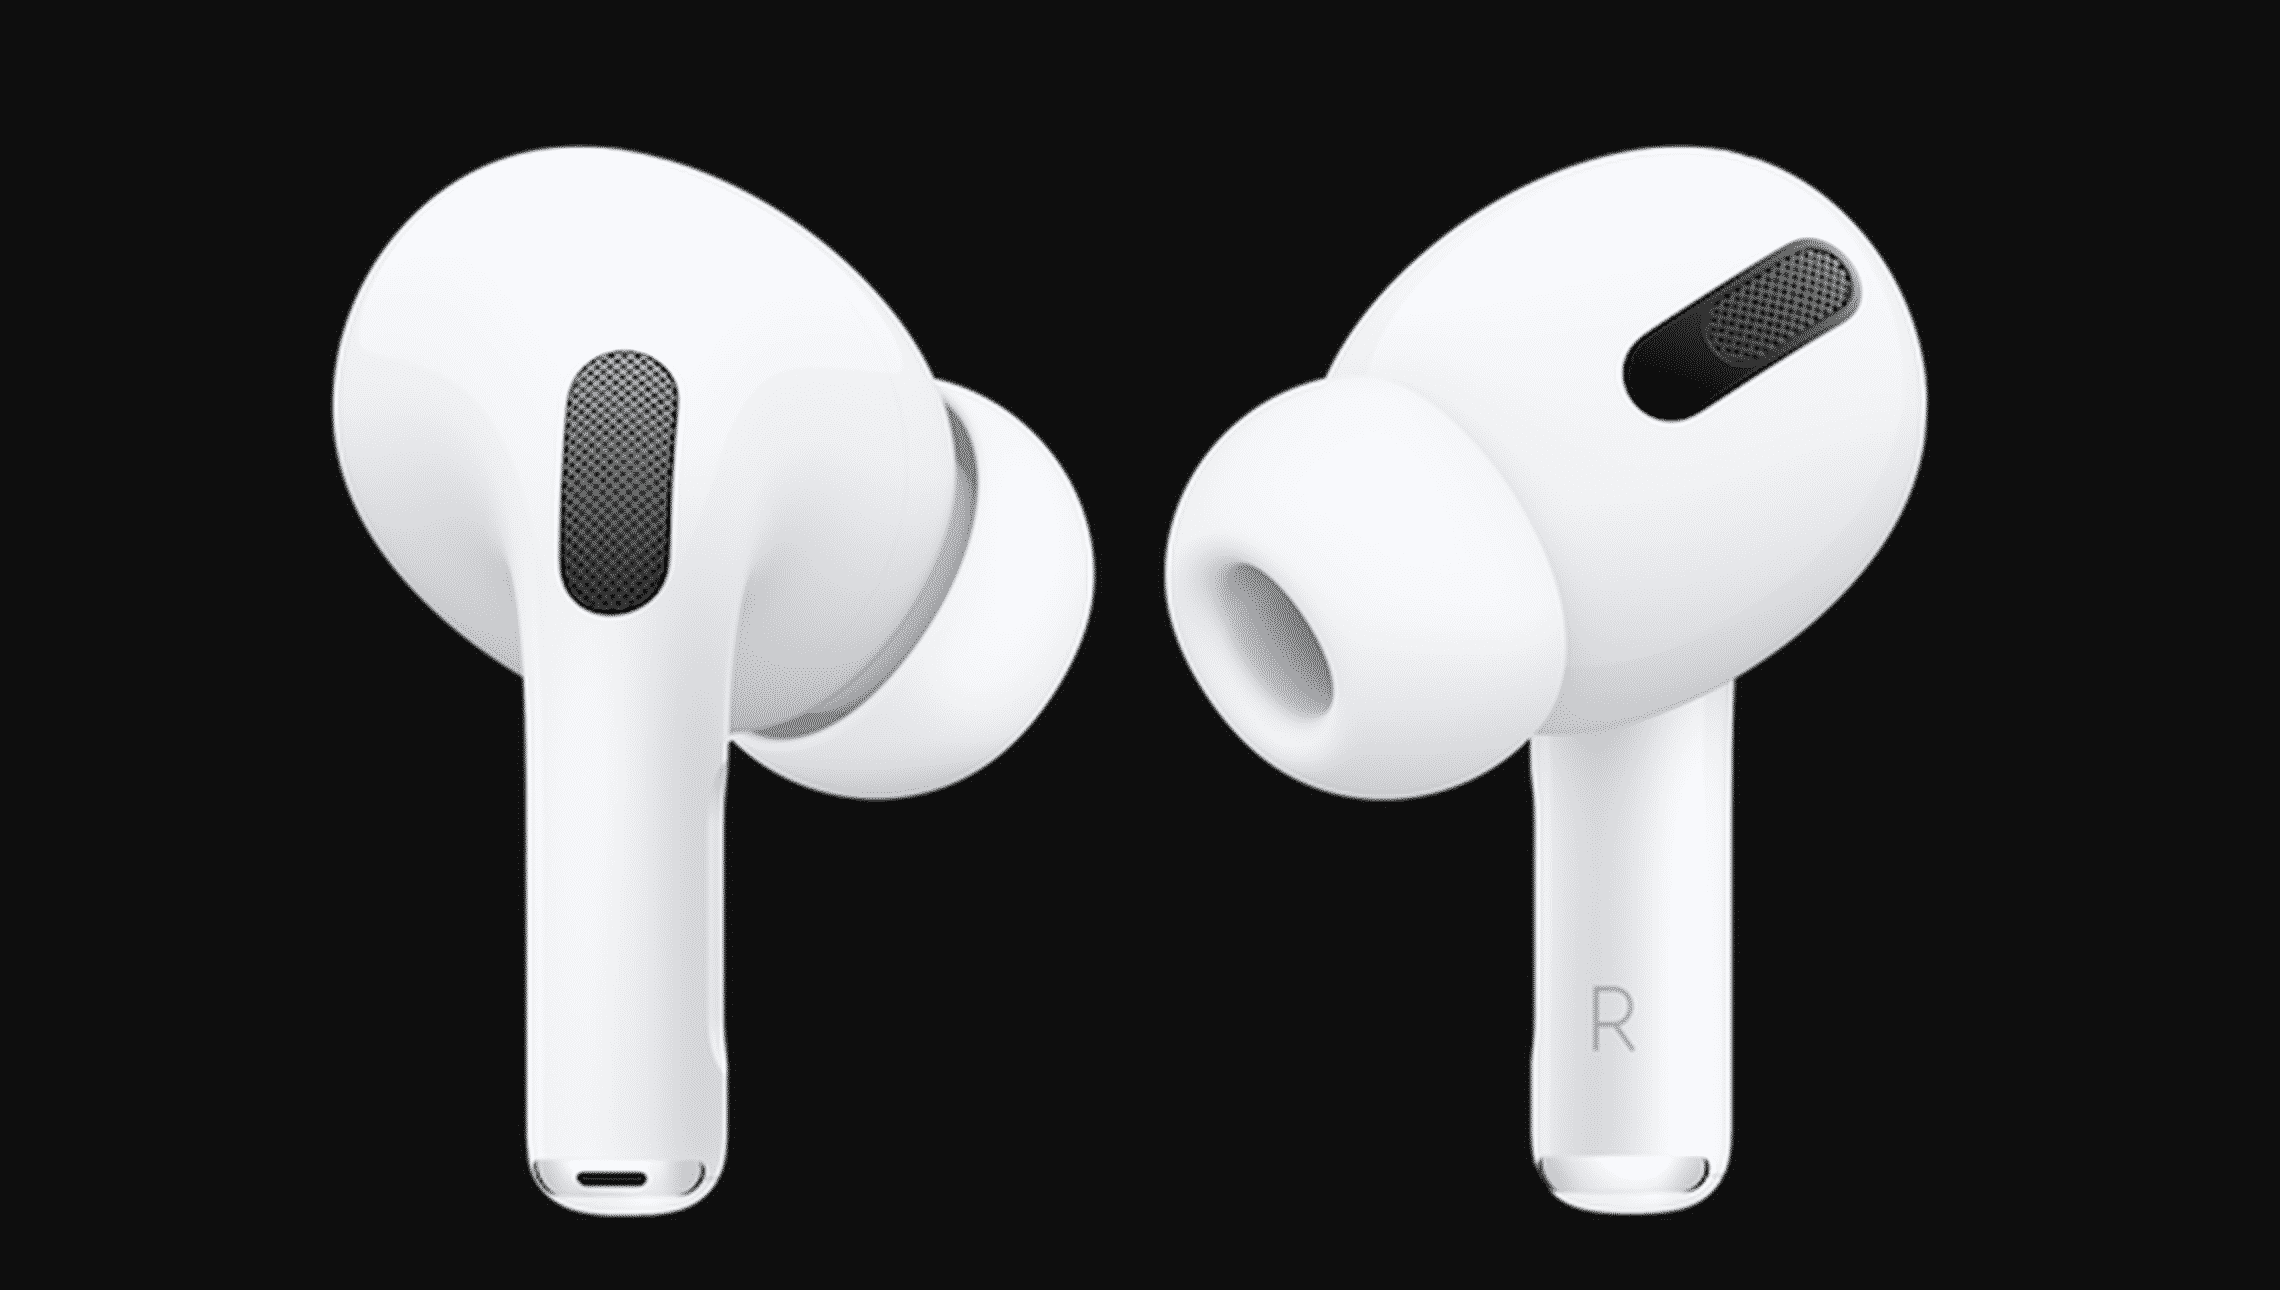 Apple will offer replacements for some malfunctioning Airpods Pro